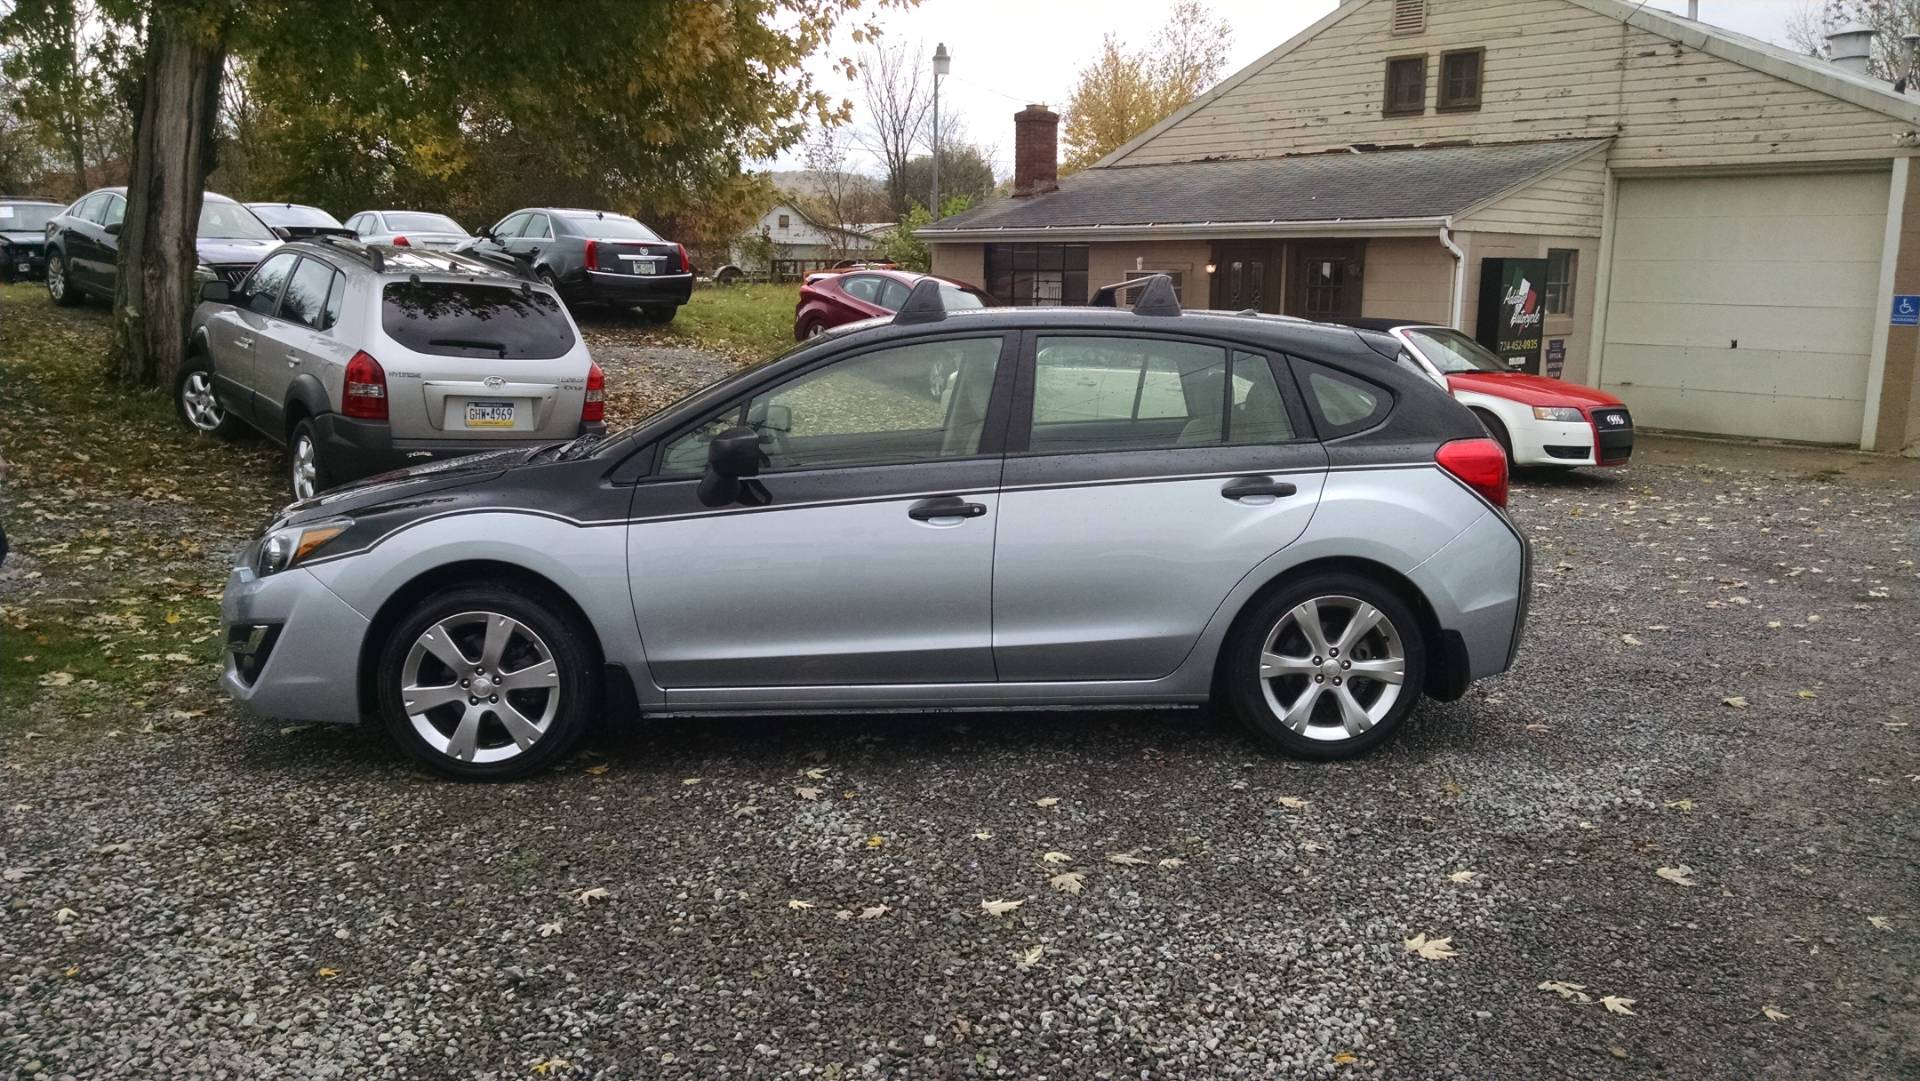 2015 Subaru Impreza Wagon 5 speed stick in Harmony, Pennsylvania